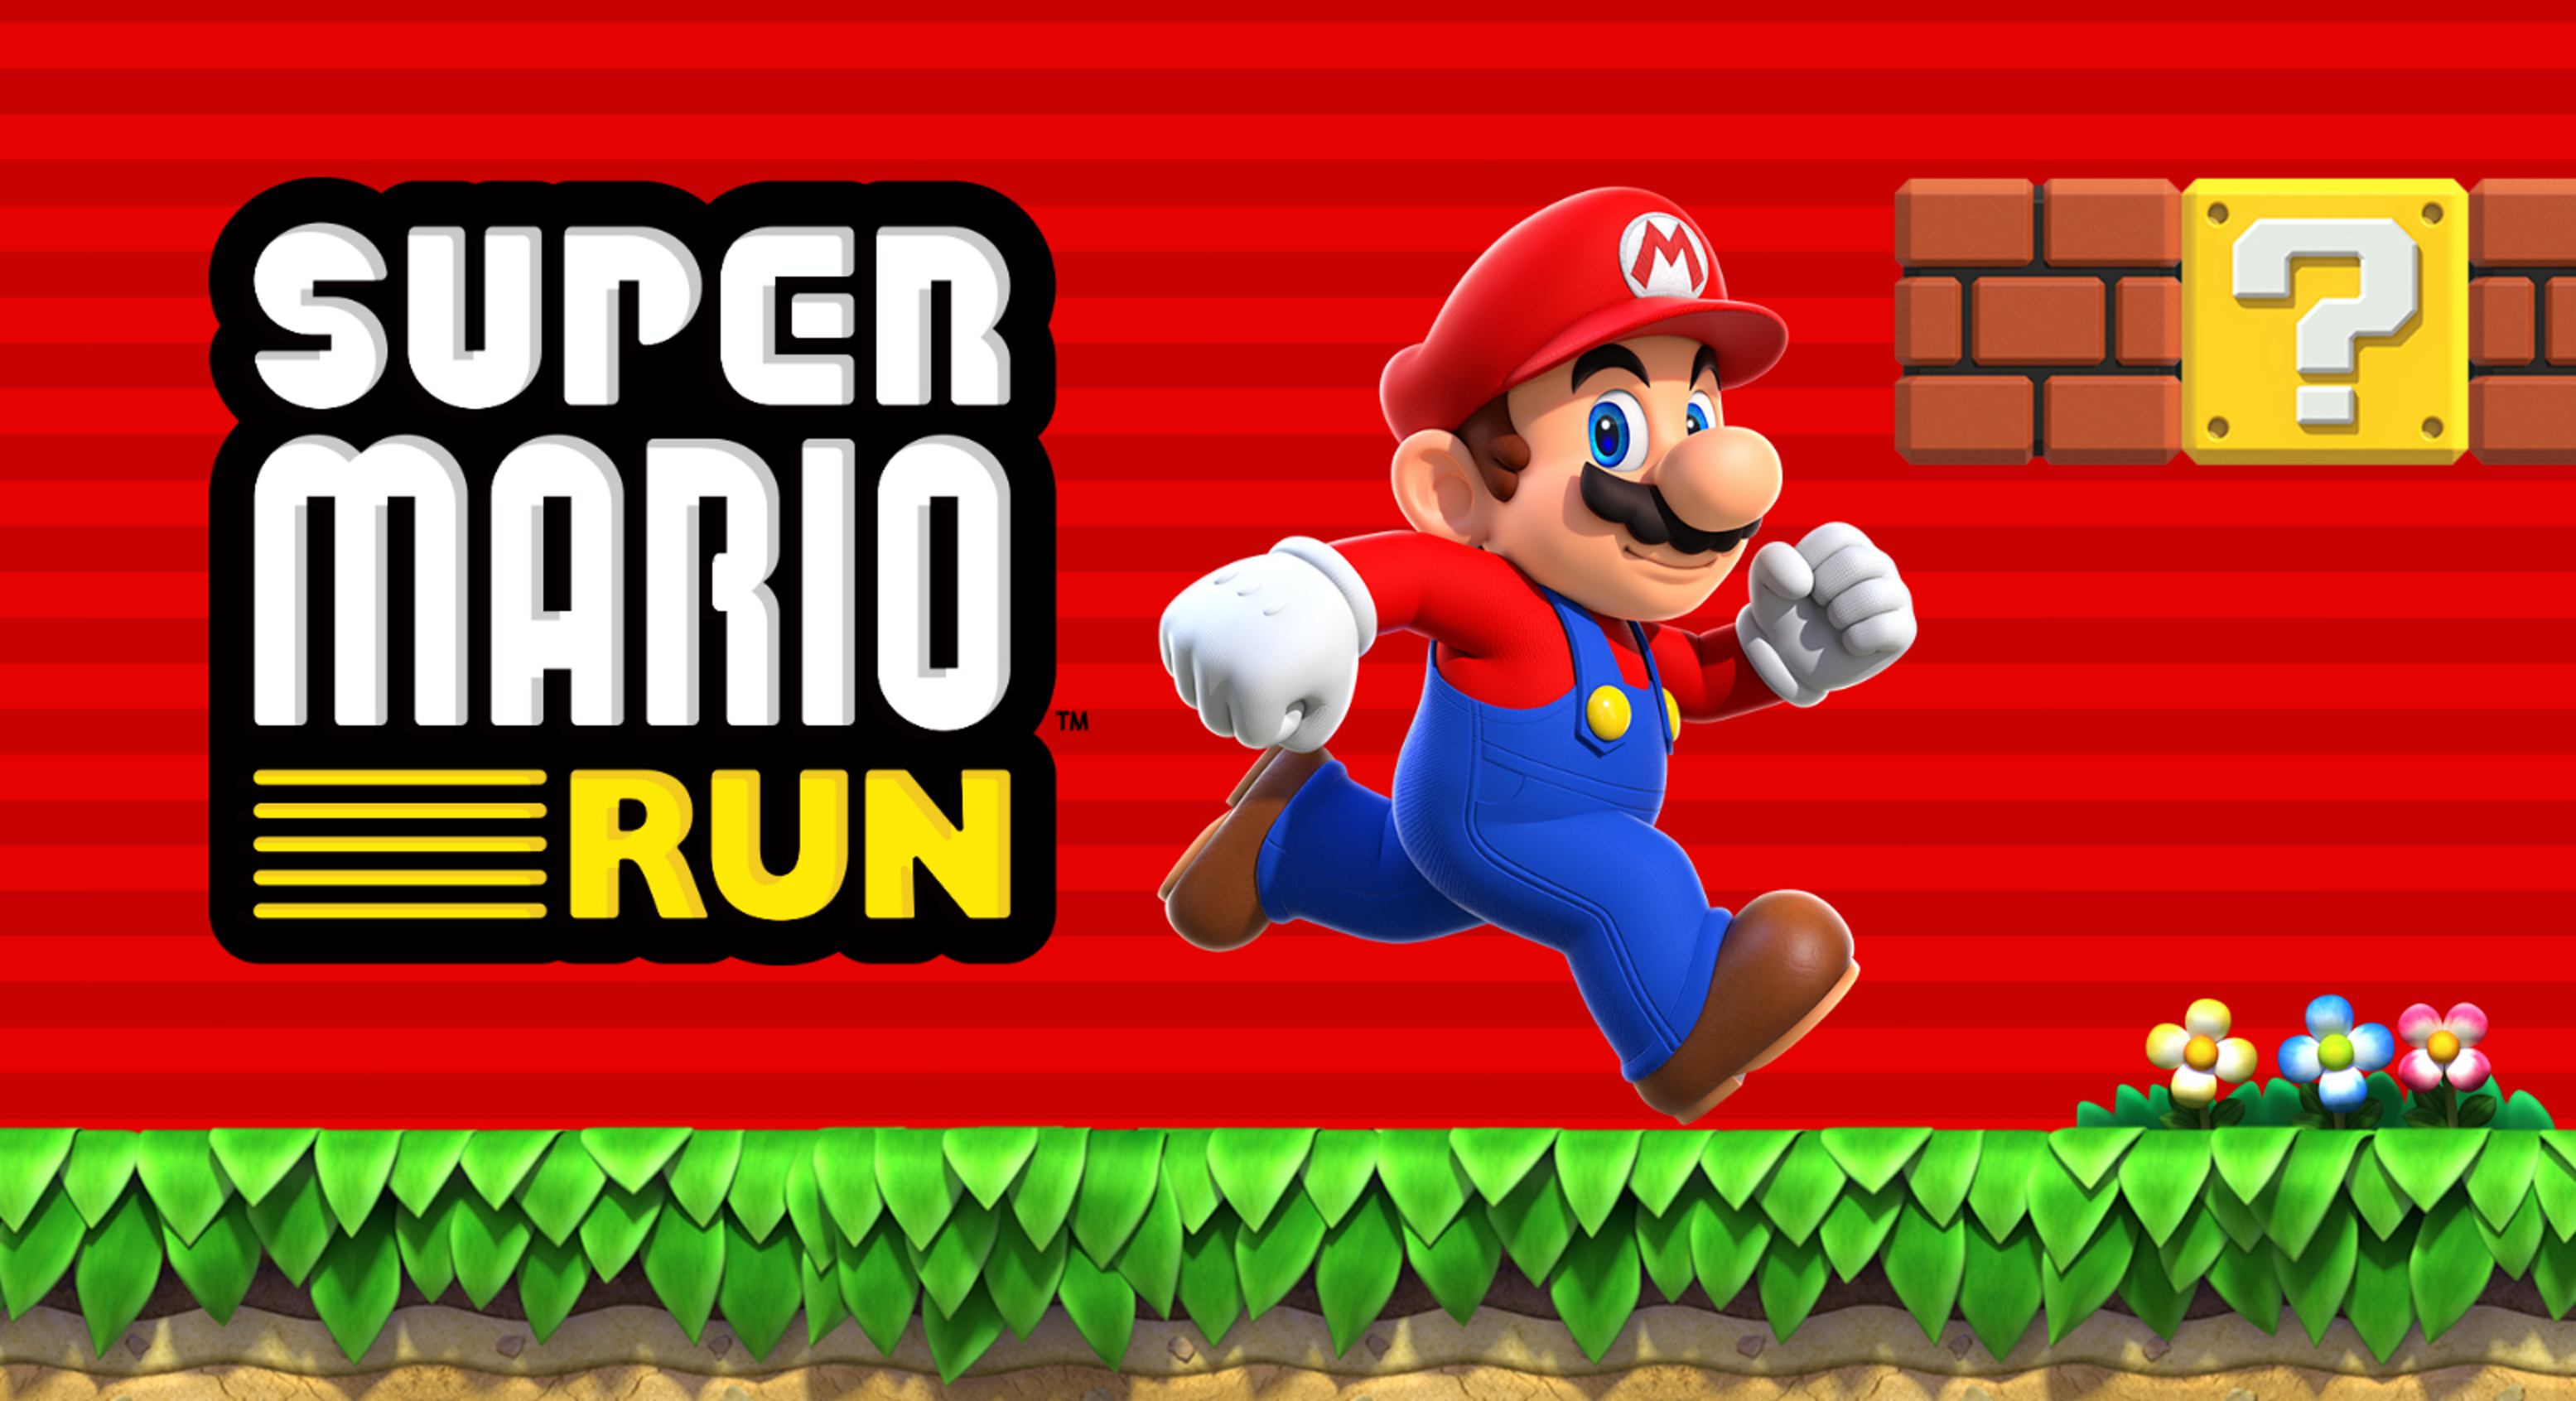 Super Mario Run will come to the iPhone later in 2016.